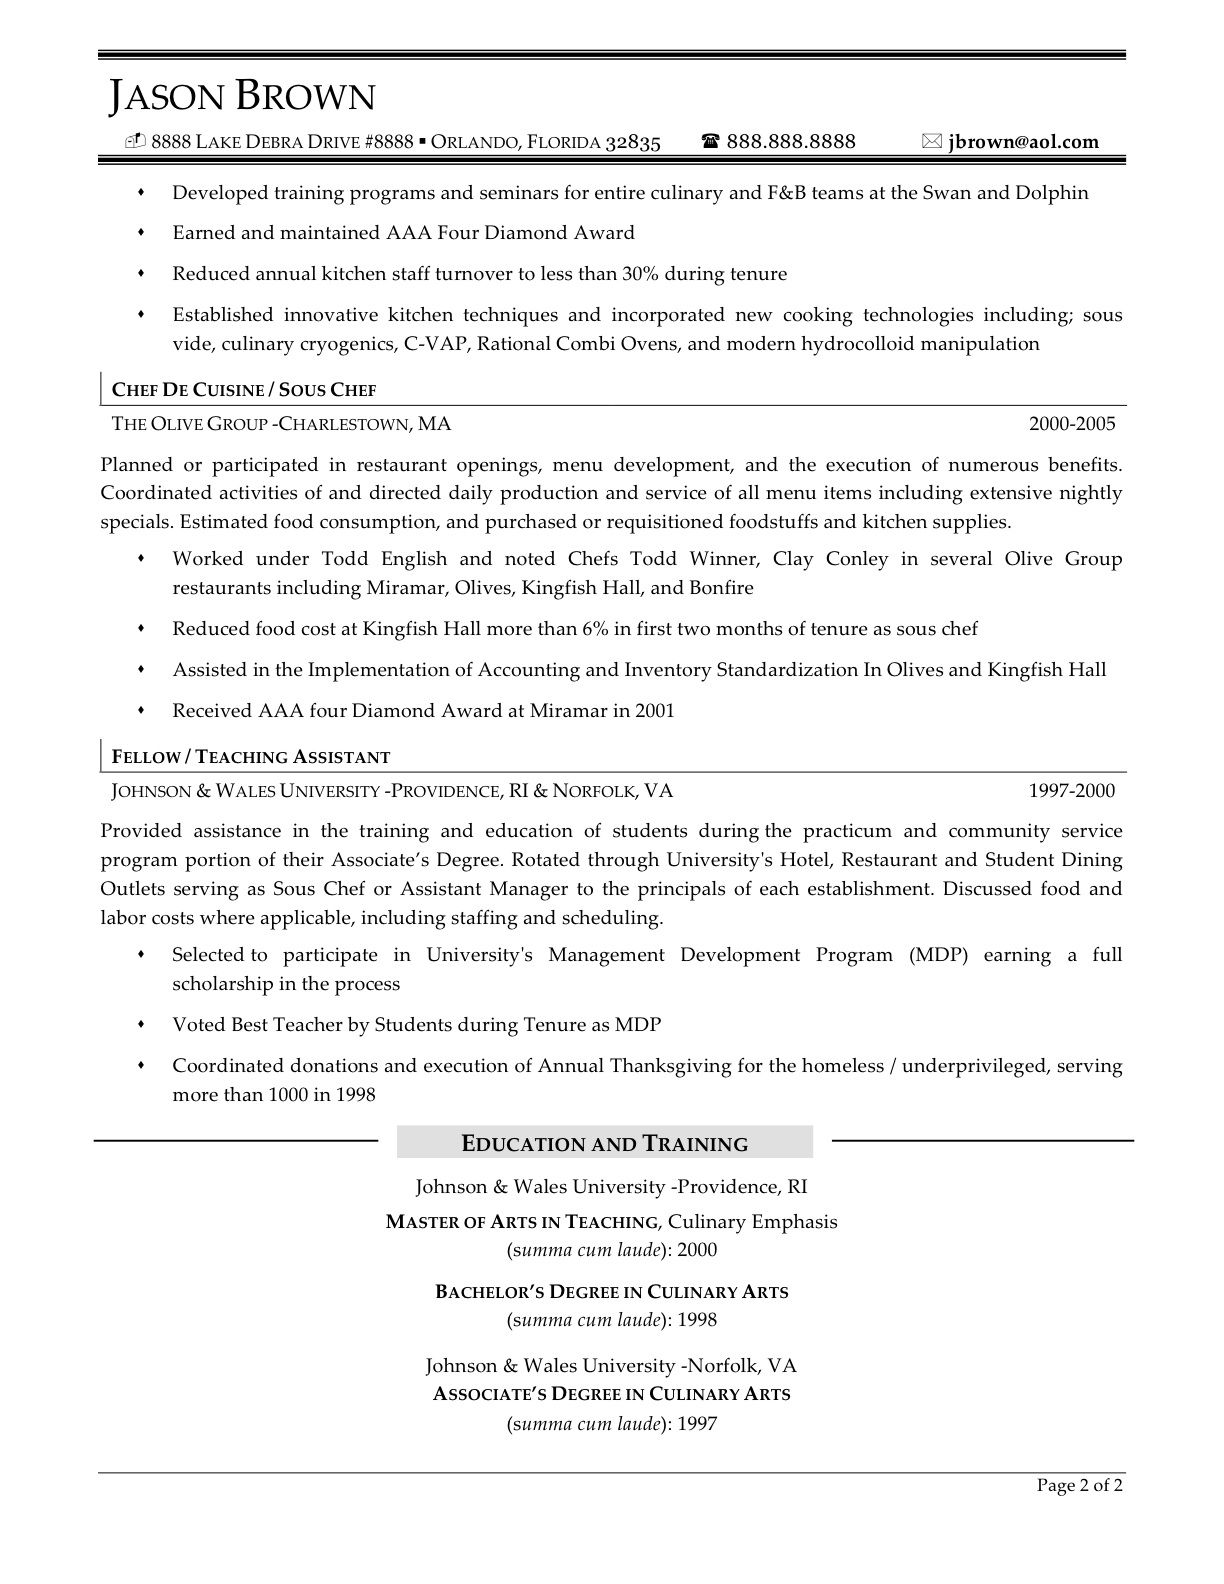 chef cook resume examples     jobresume website